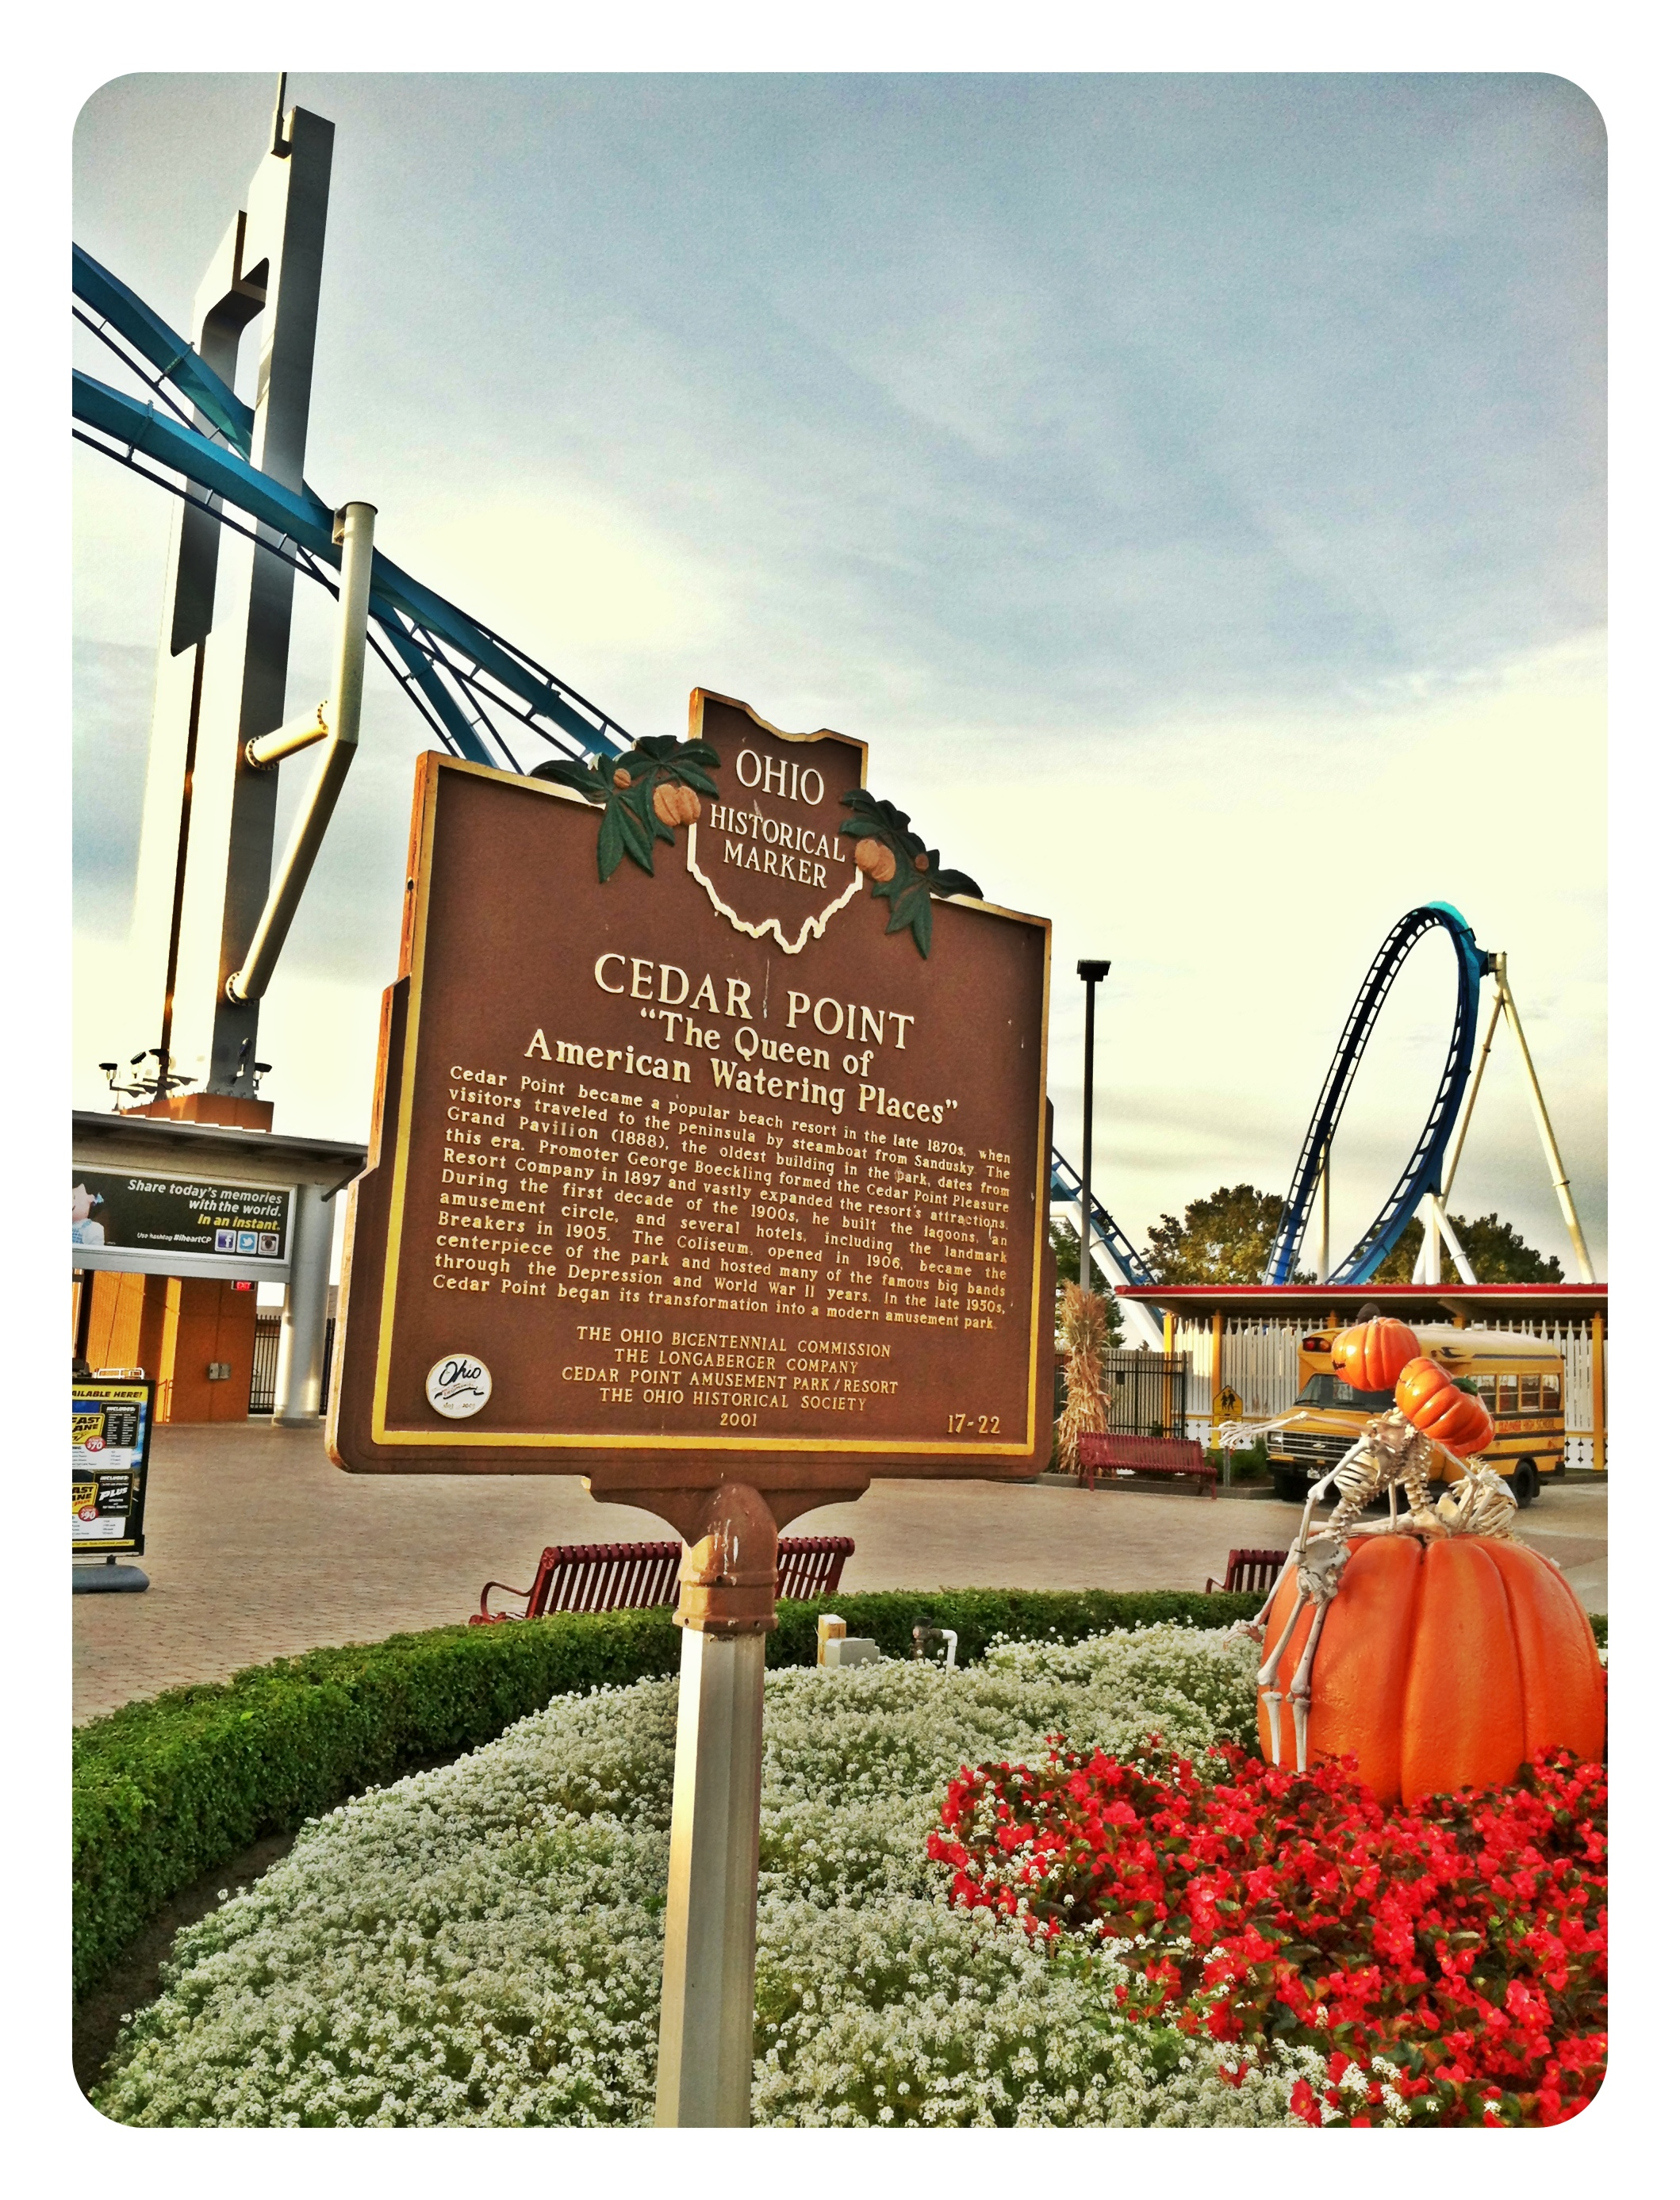 Remarkable Ohio ... Ohio Historical Marker #17-22 Cedar Point|Sharon the Moments blog